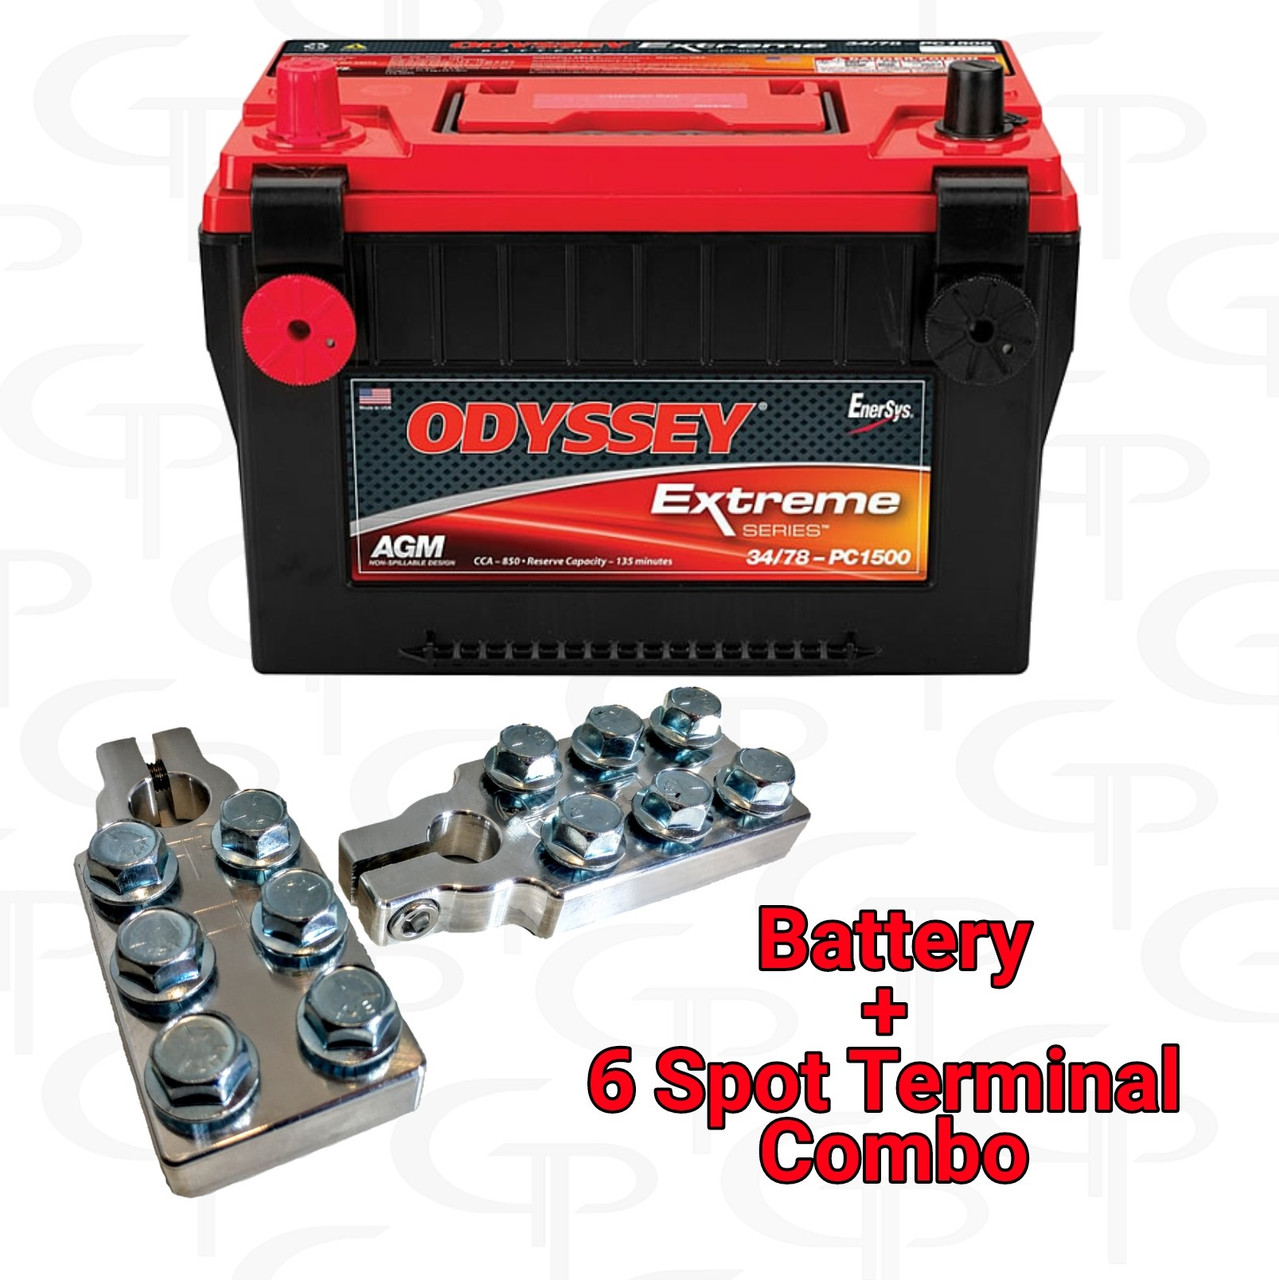 ODYSSEY Extreme Series Battery ODX-AGM34 78 w/ GP Machined Terminals